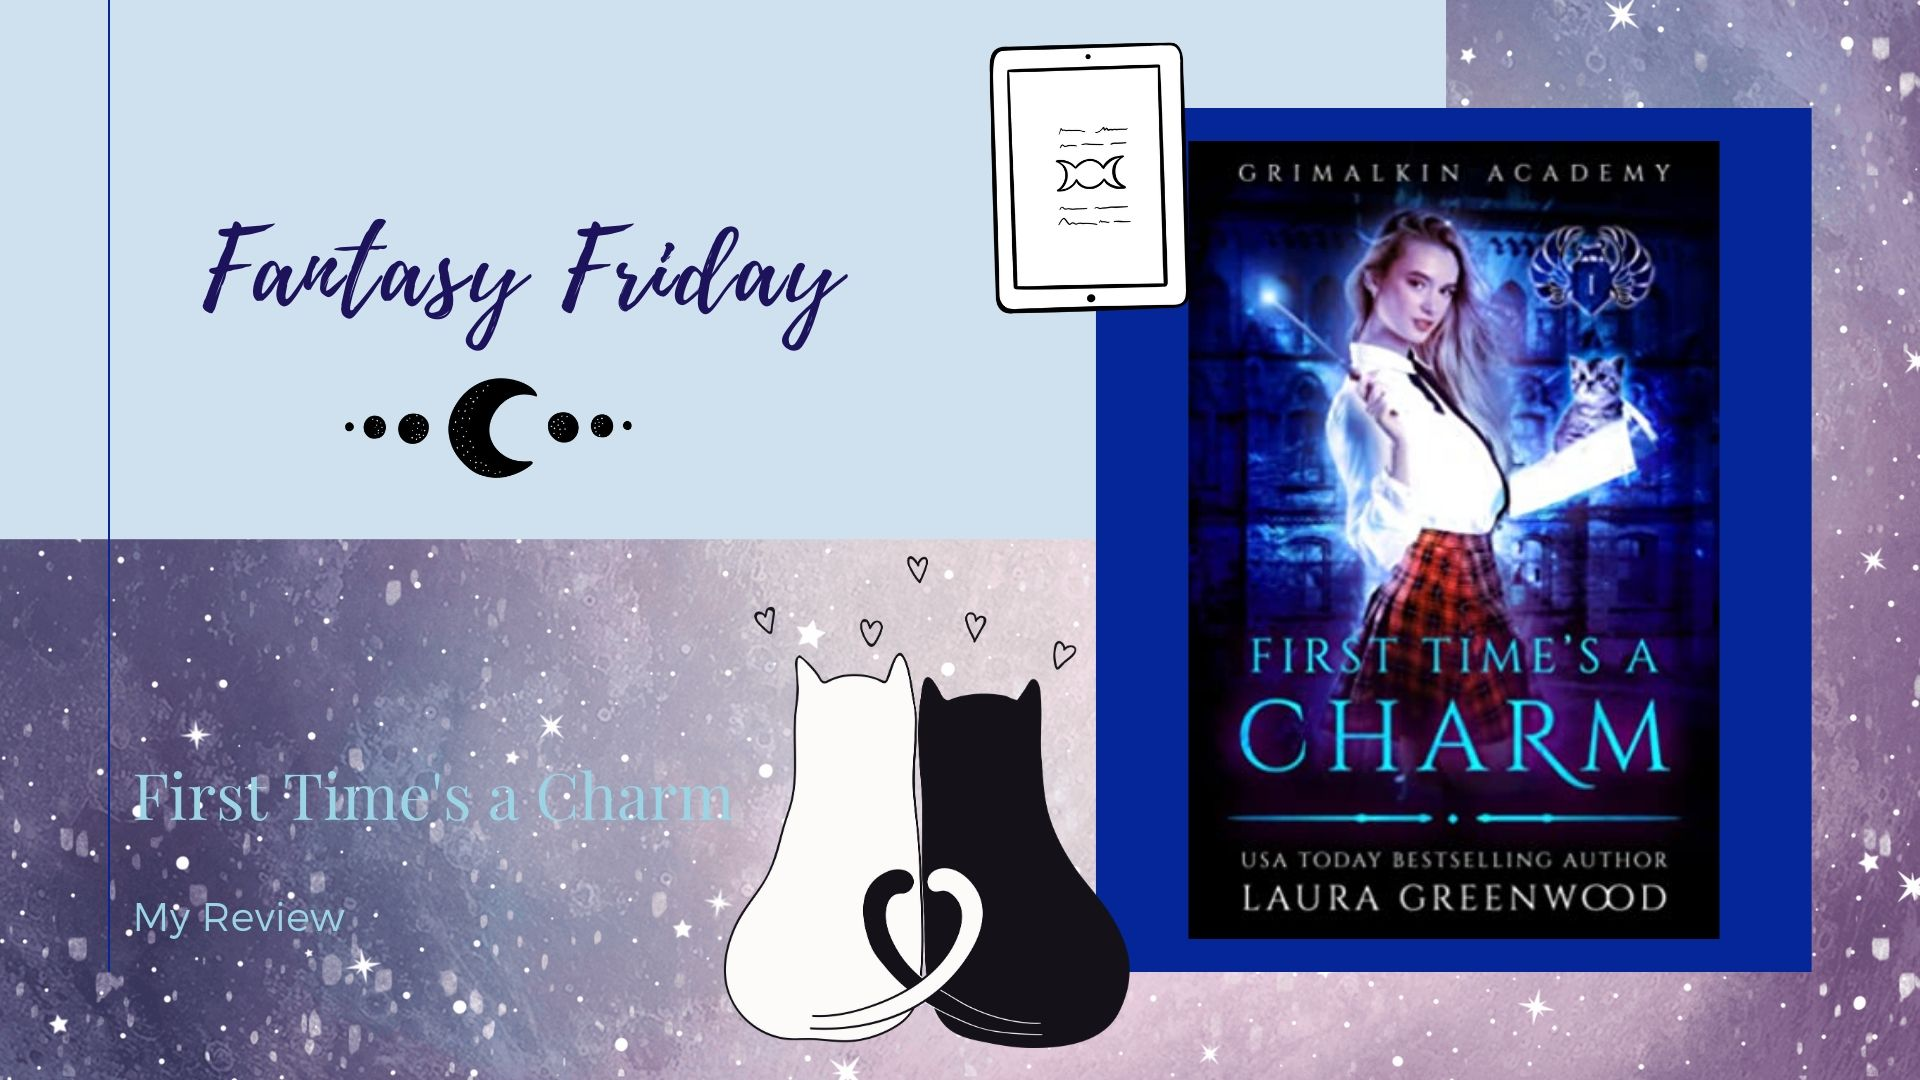 You are currently viewing Fantasy Friday: First Time's a Charm by Laura Greenwood